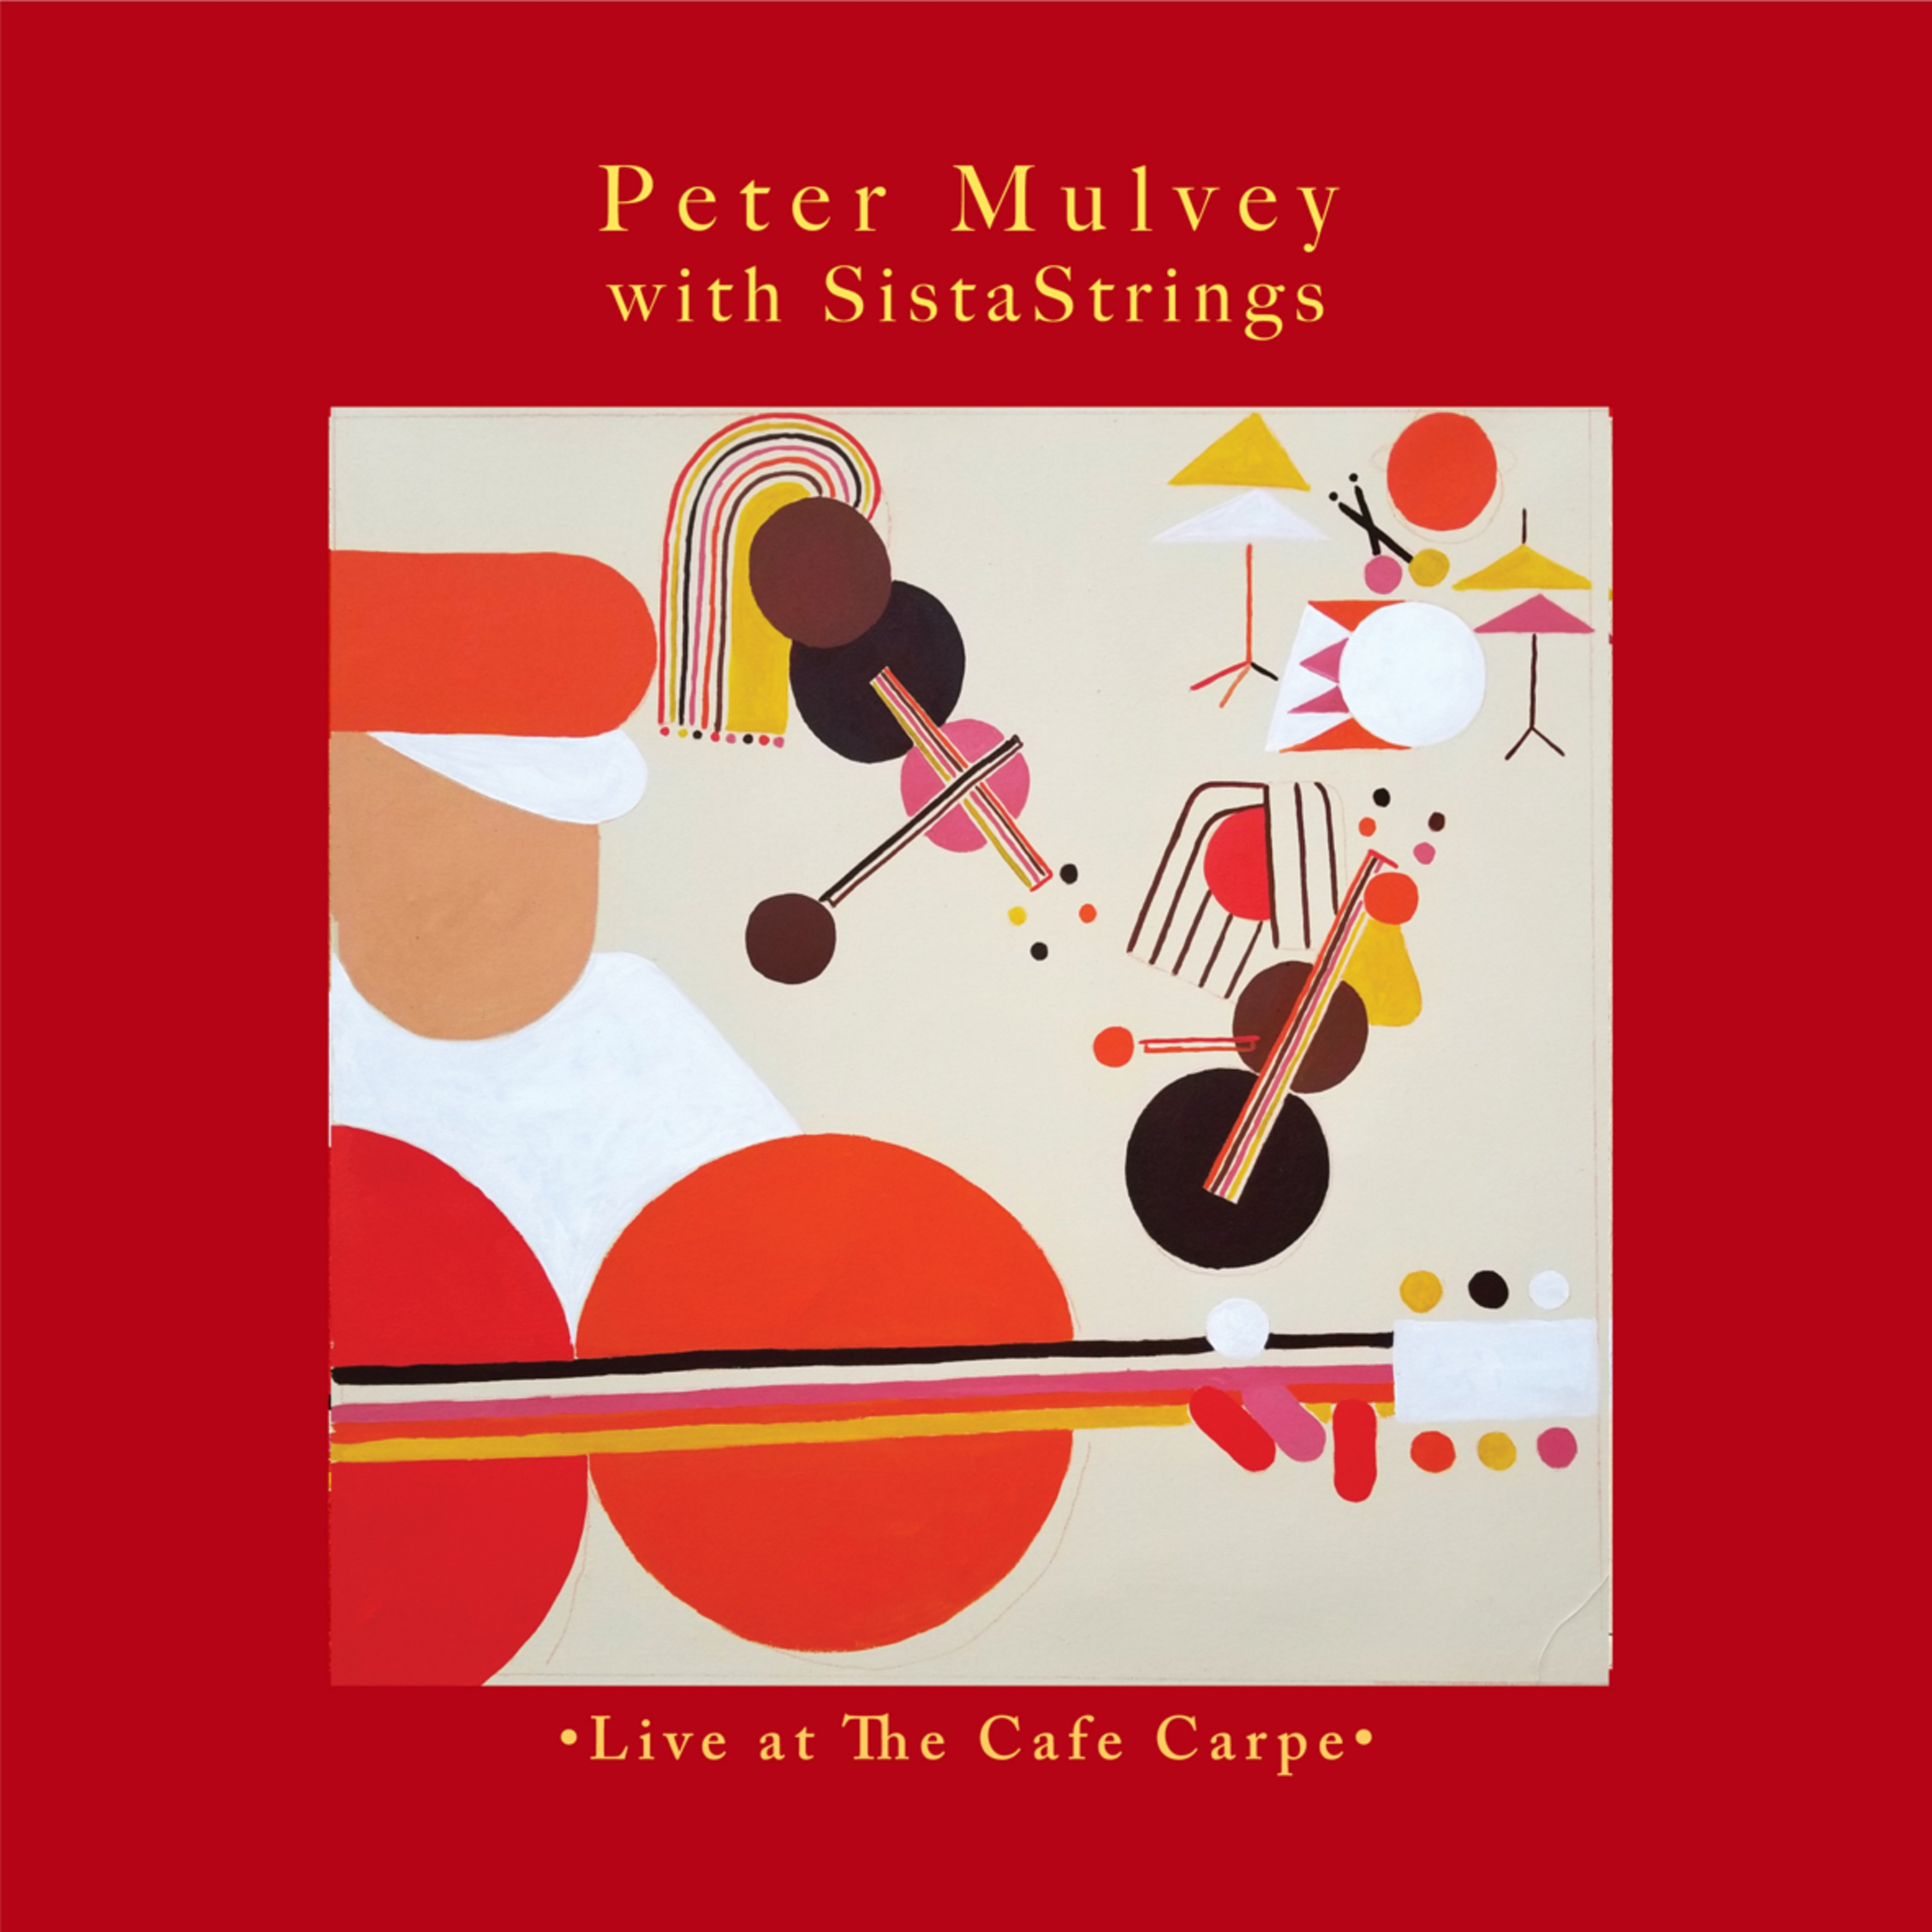 'Peter Mulvey with SistaStrings: Live at the Cafe Carpe' to Be Released October 9